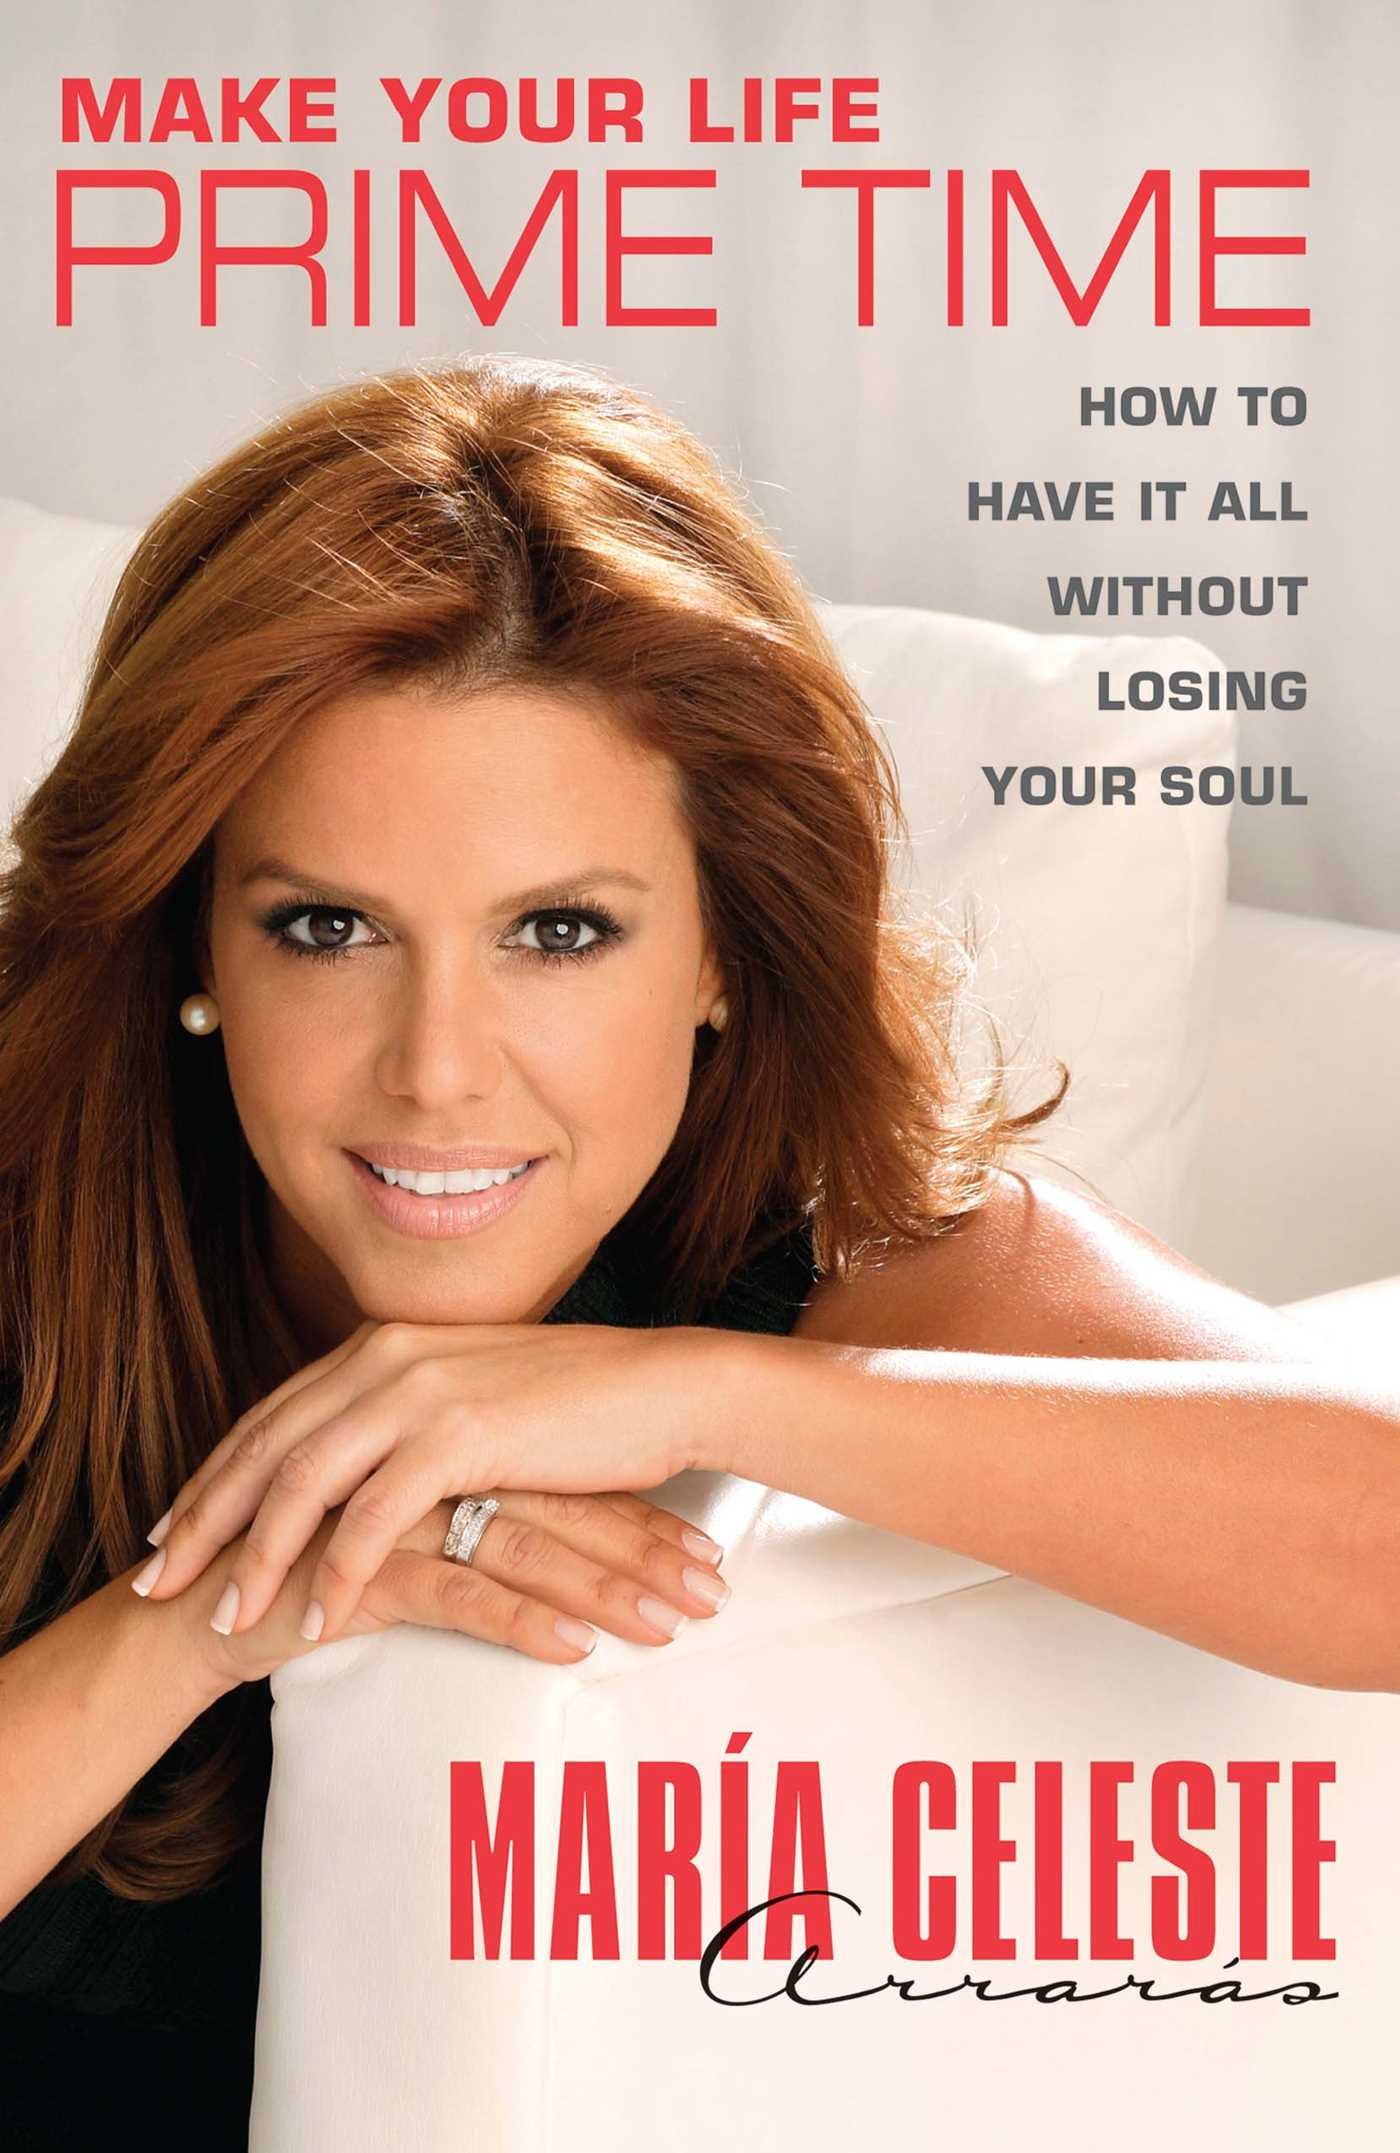 How To Make A Book About Your Life : Make your life prime time ebook by maría celeste arrarás